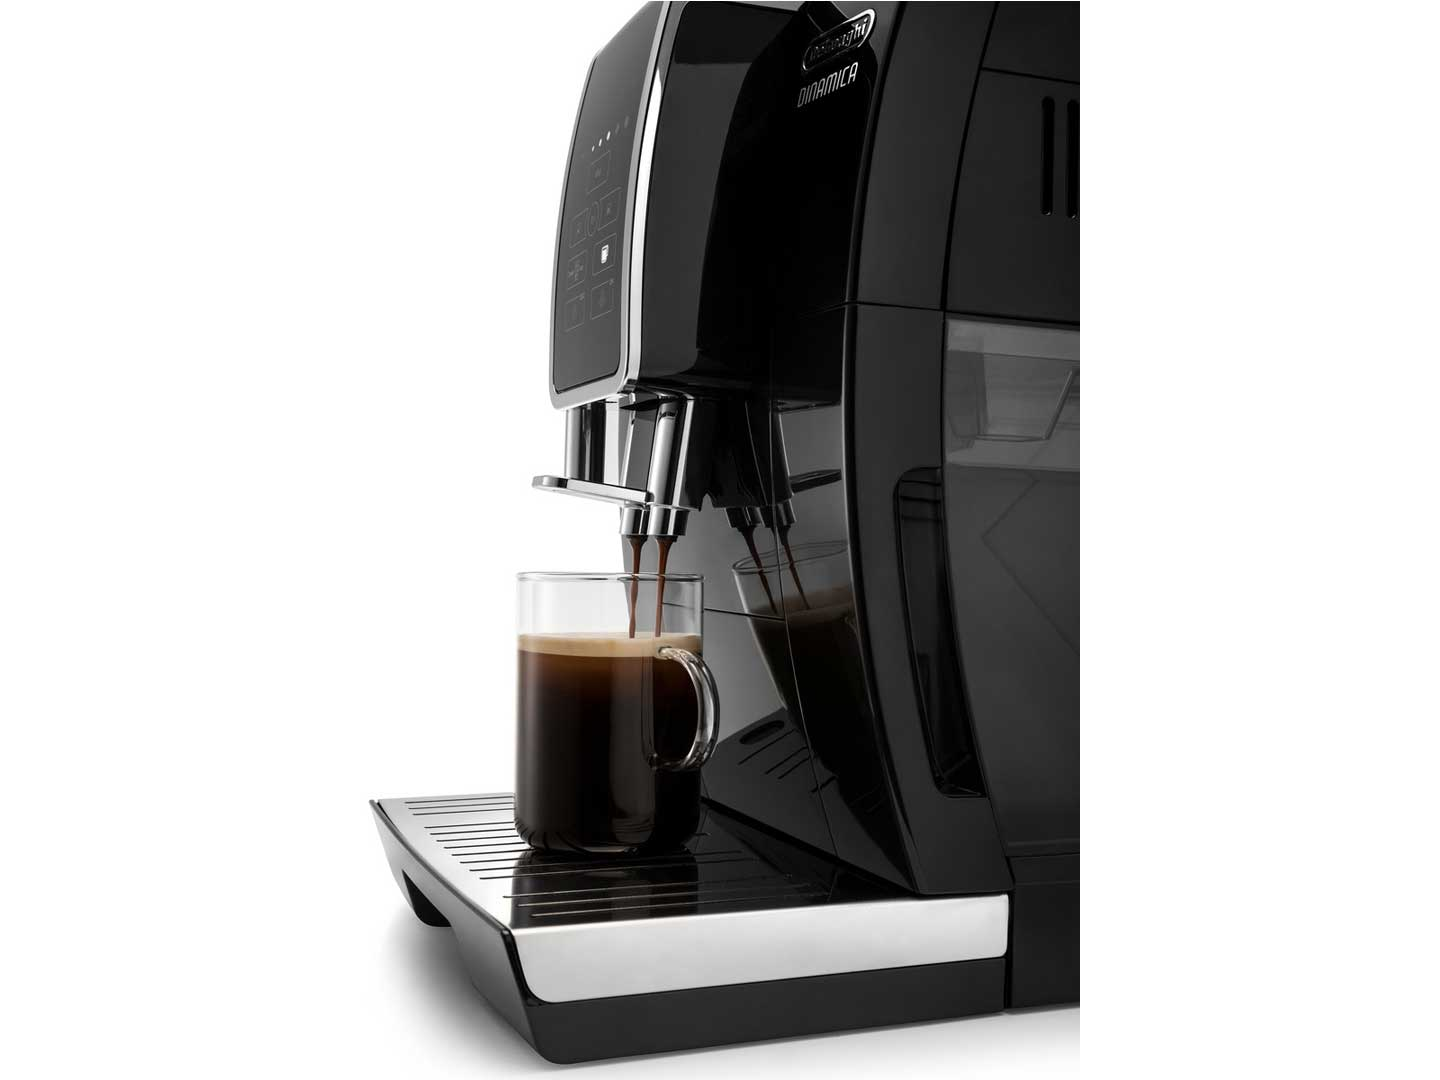 Dinamica Automatic Coffee & Espresso Machine with Iced Coffee, TrueBrew Over Ice, Black -  - ECAM35020B